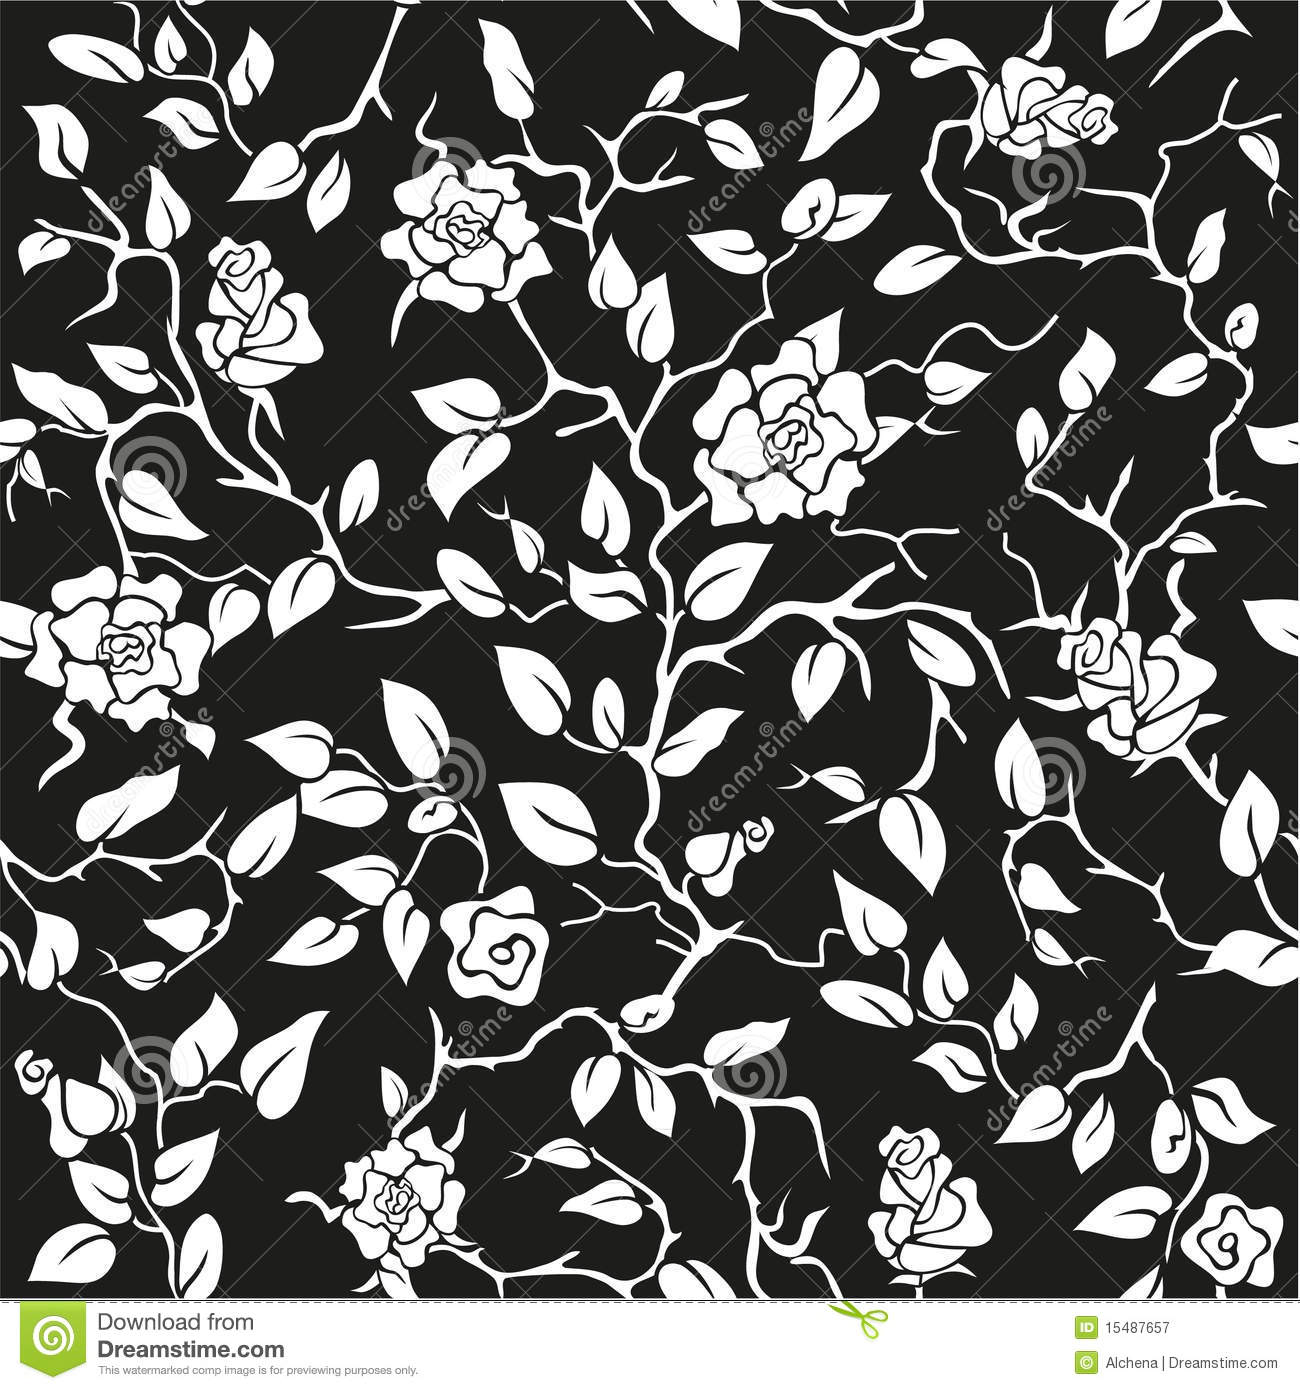 Black and white flower pattern tumblr digitalspacefo black and white flower pattern tumblr mightylinksfo